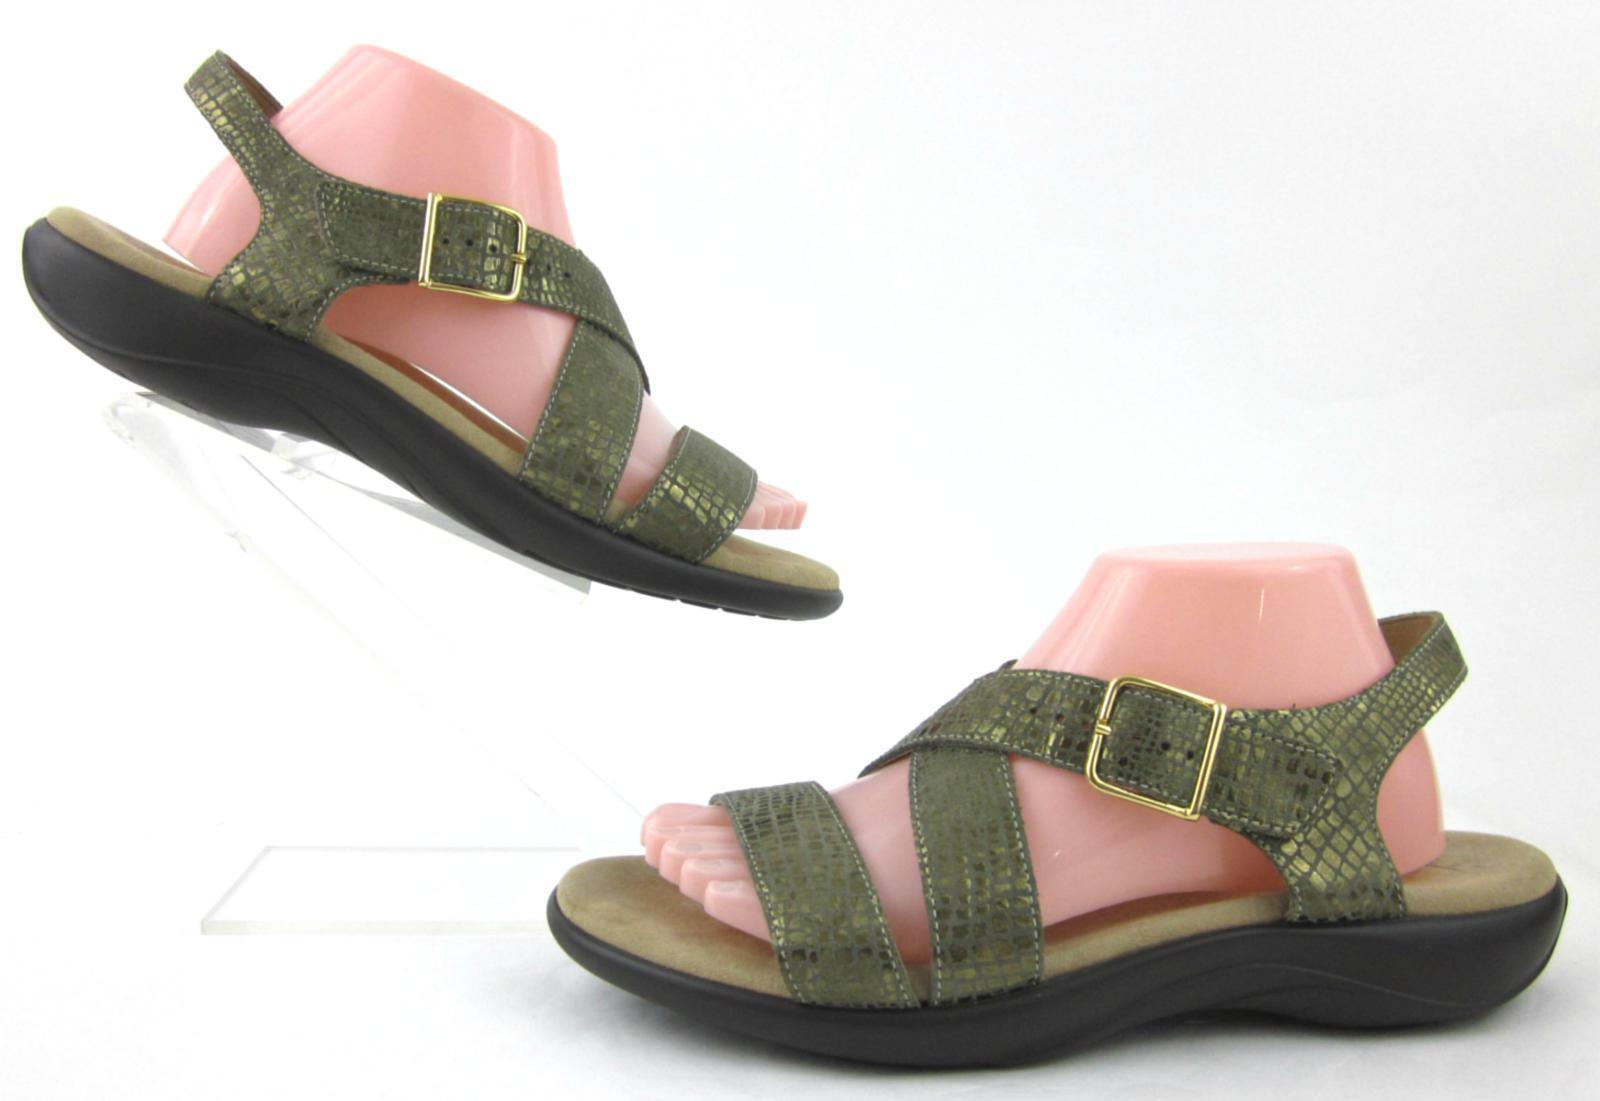 SAS Laguna Comfort Sandals Olive oro Leather US 10M Mint Condition